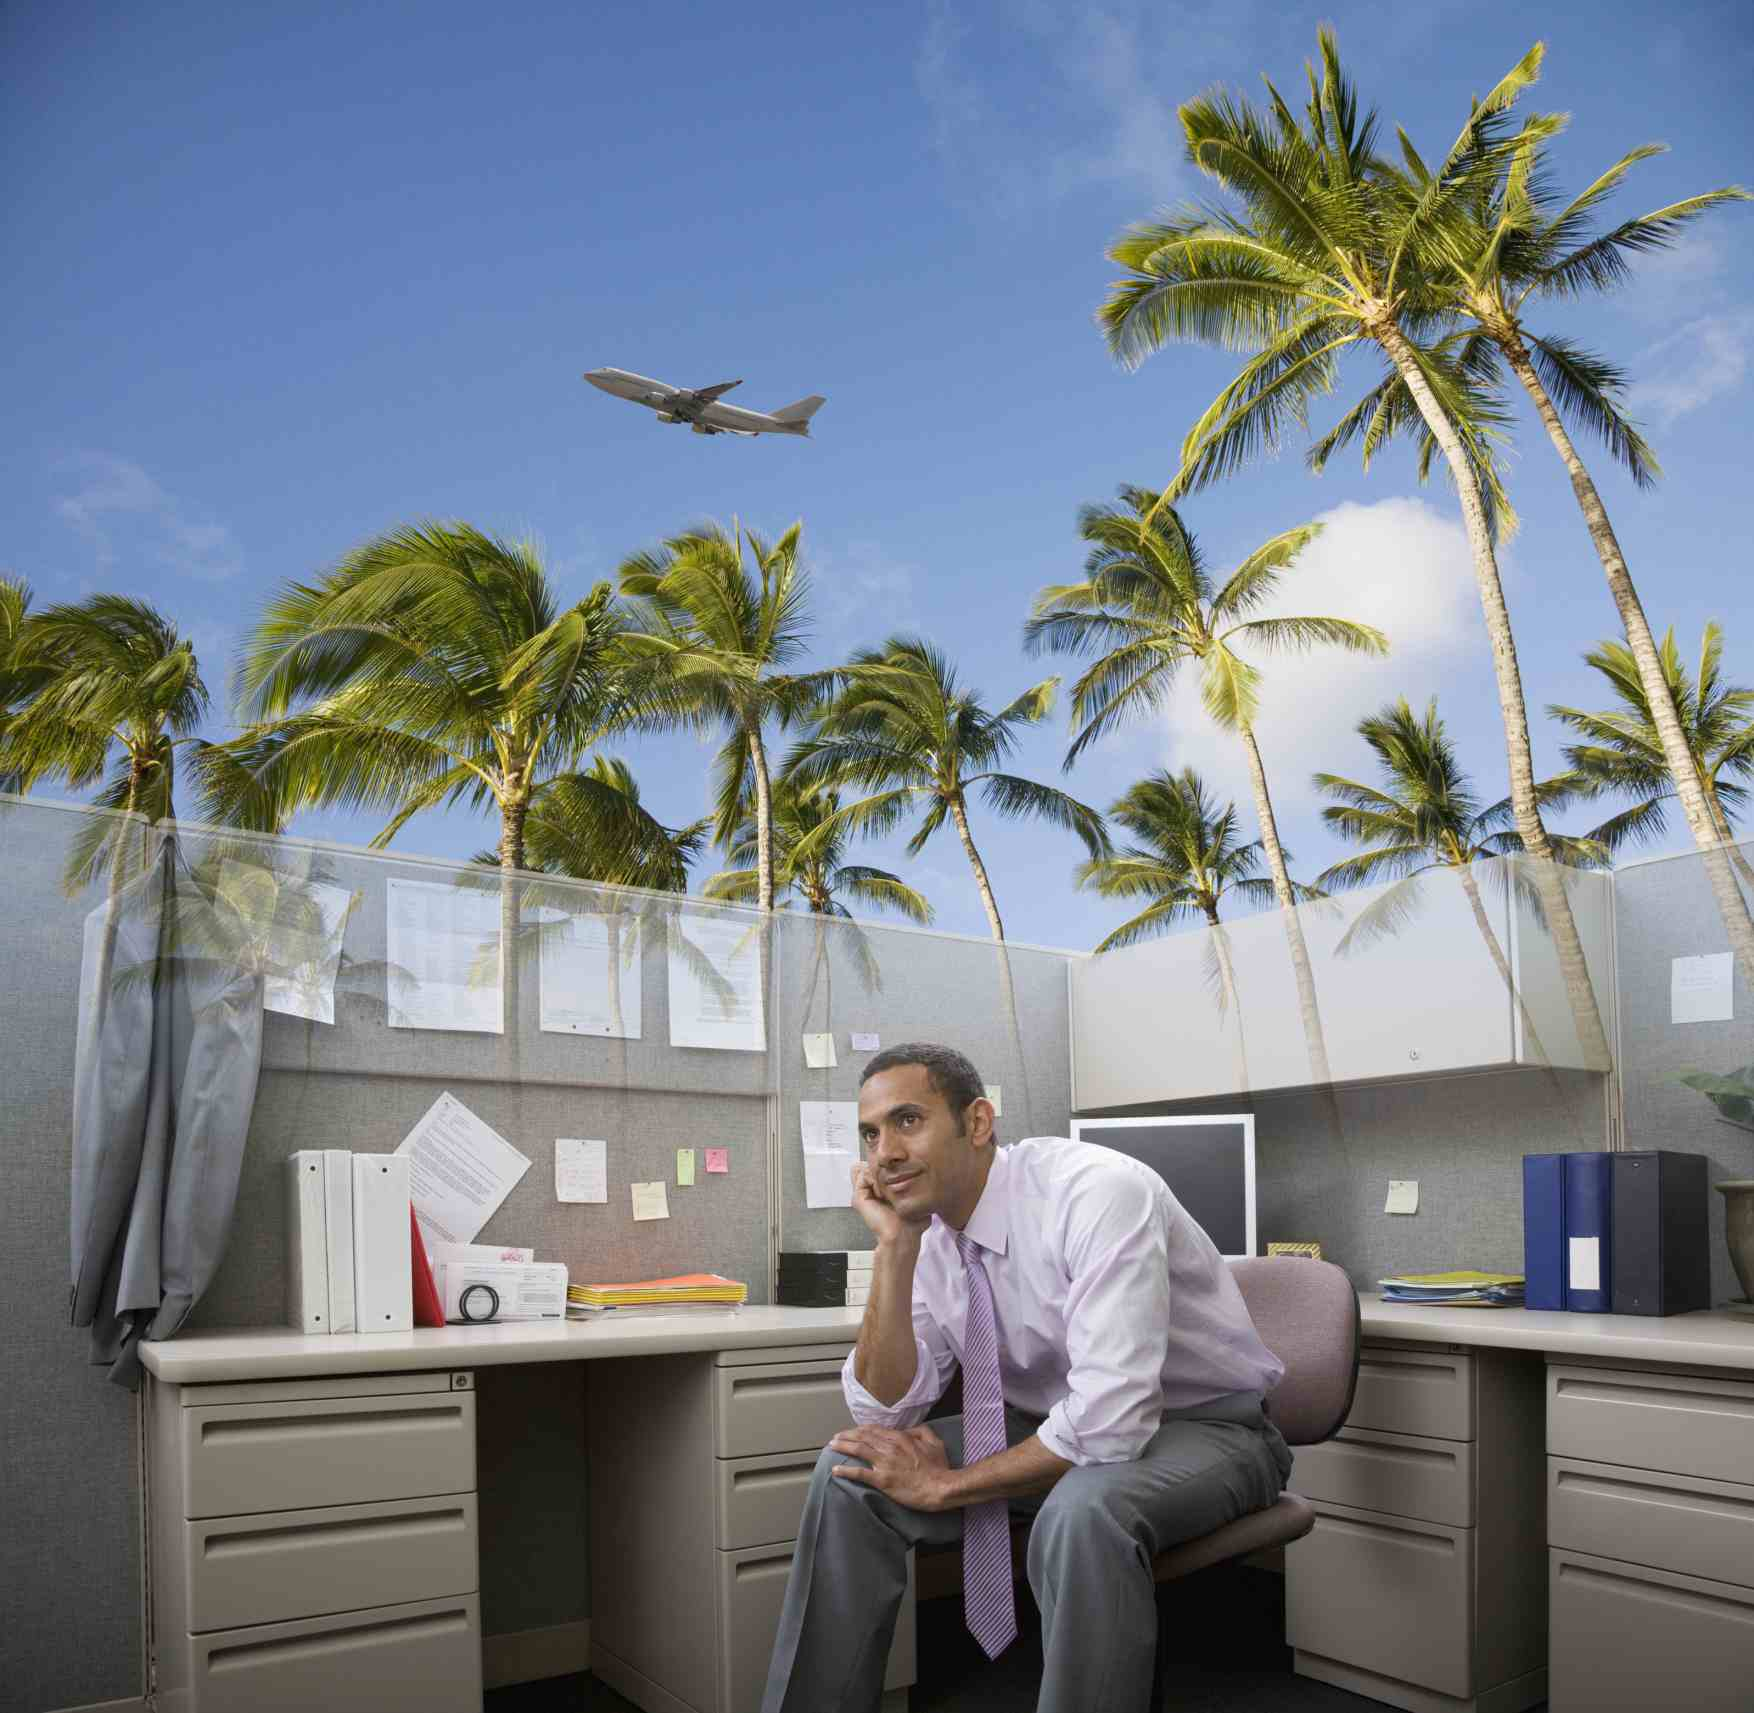 Man in cubicle dreaming of paradise